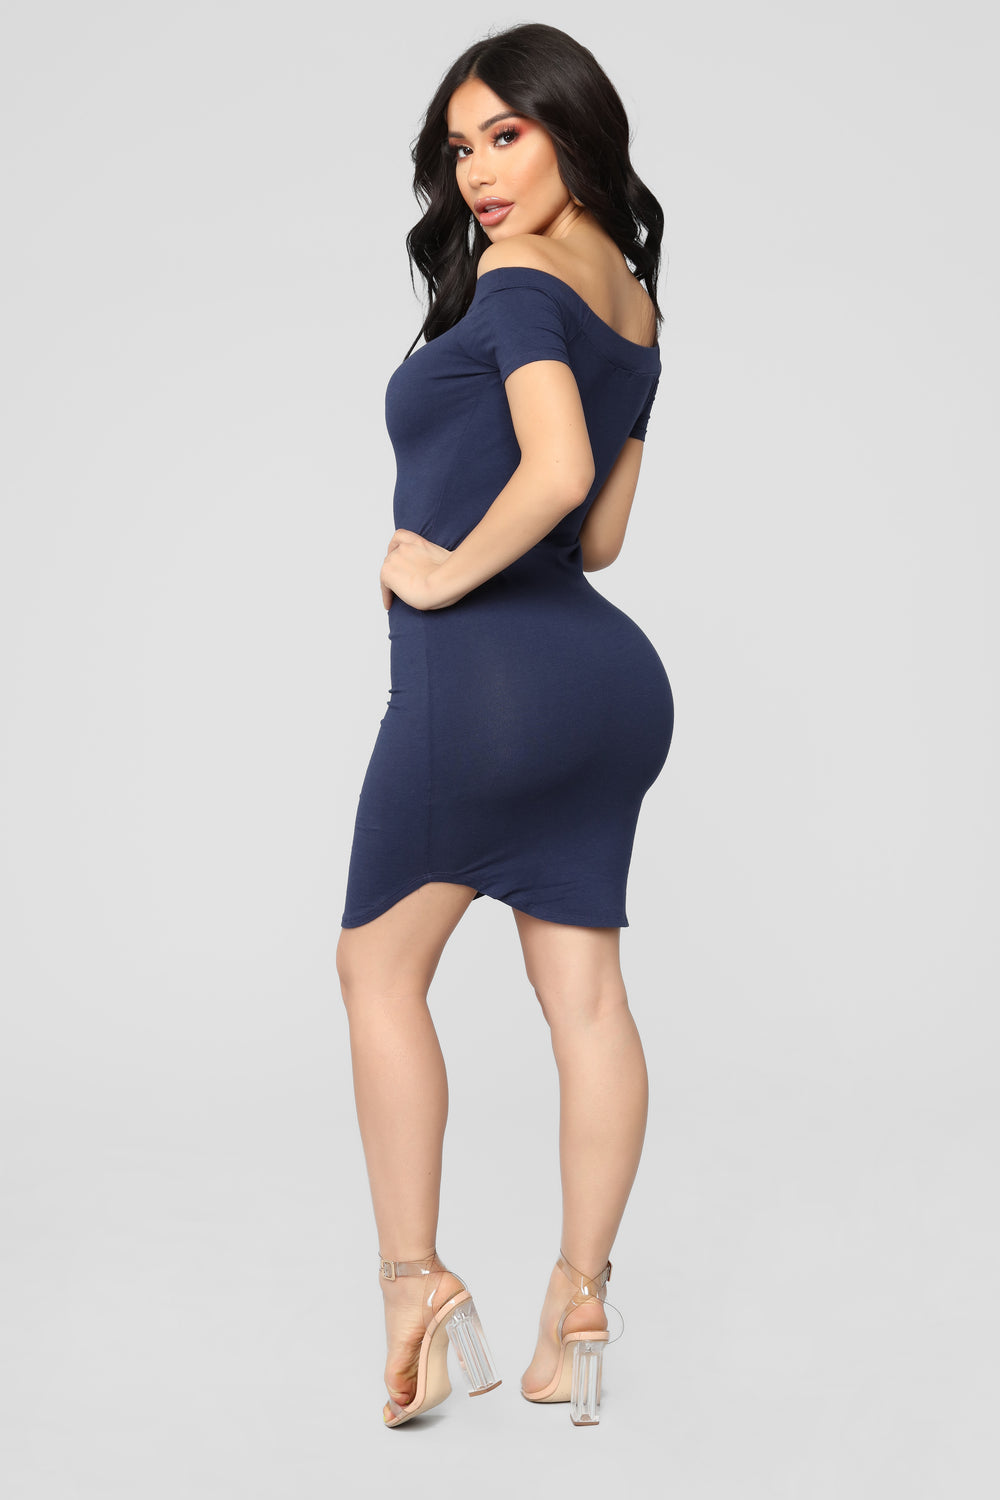 Summer Nights Dress - Navy